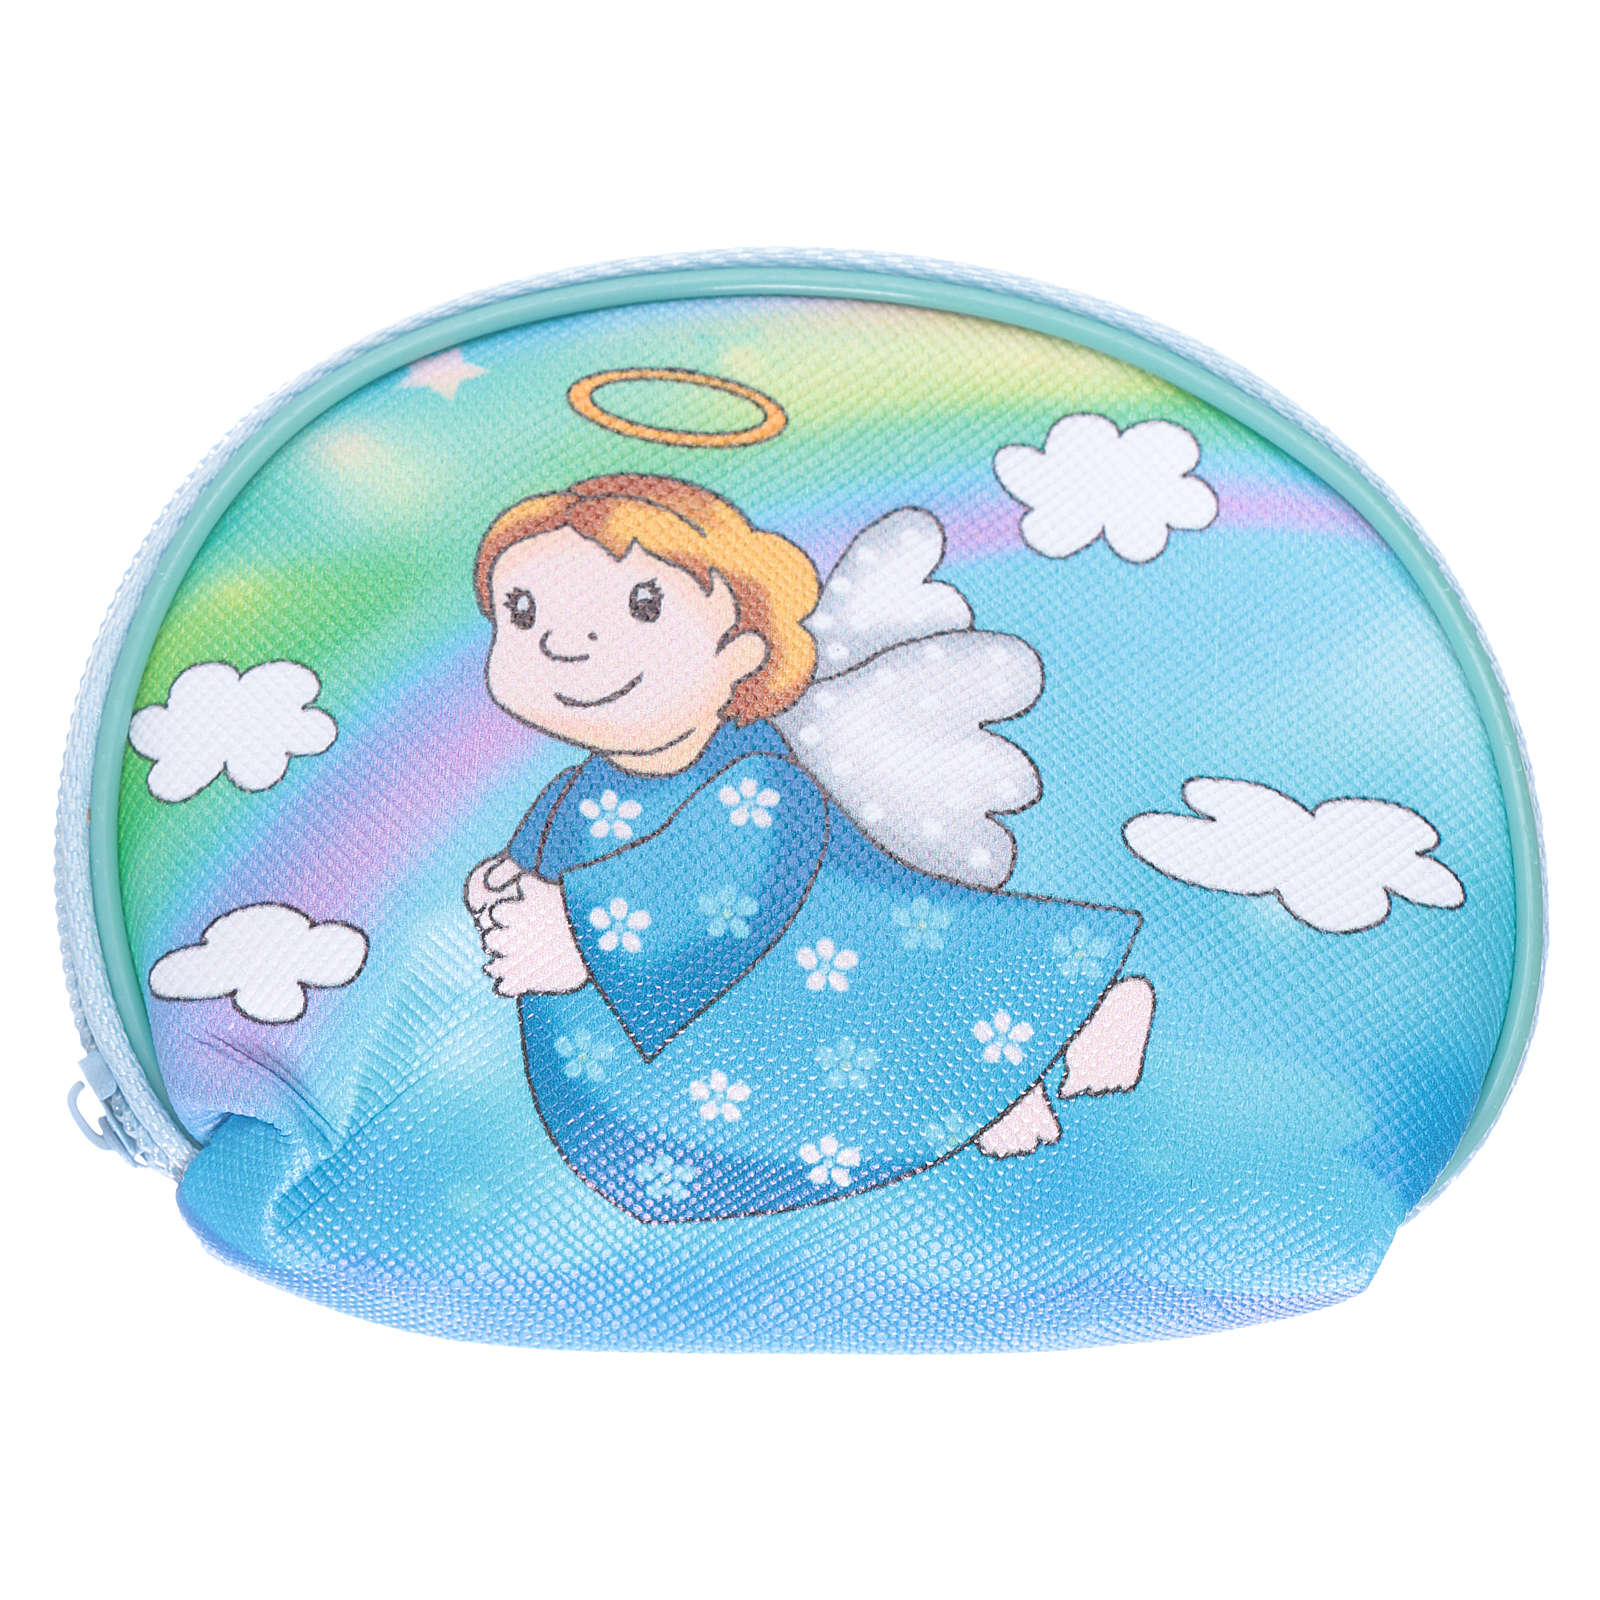 Purse rosary holder 10x8 cm with Angel dressed in light blue image 4